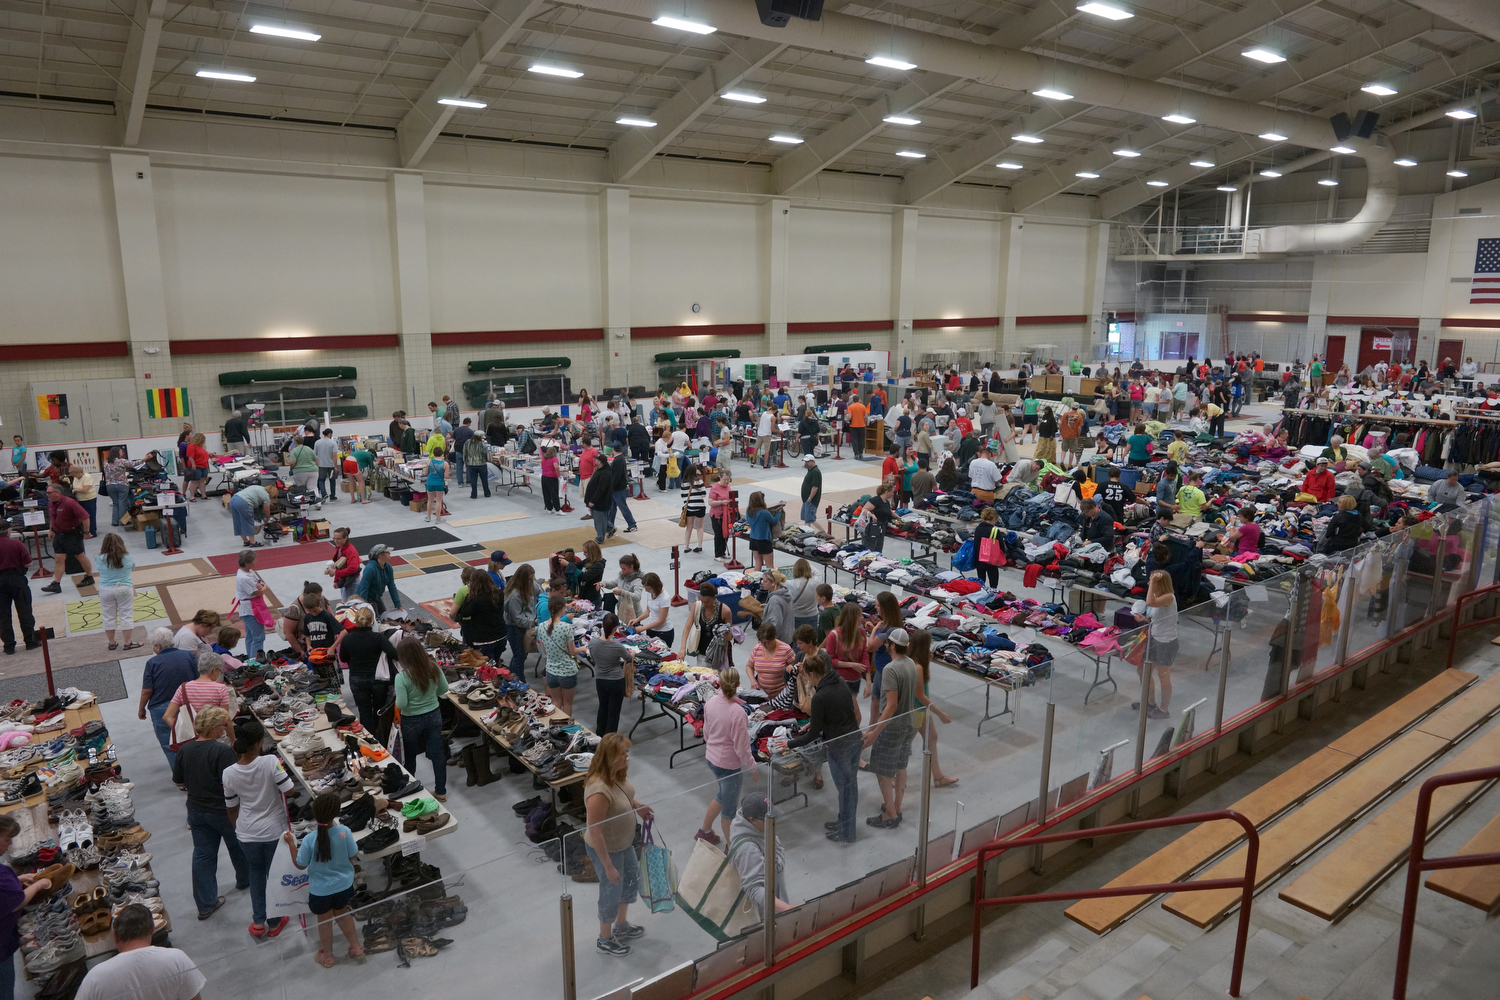 Underhill Arena provides ample space for Bates College's annual Clean Sweep sale. Photograph by Vasu Leeaphon '15/Bates College.